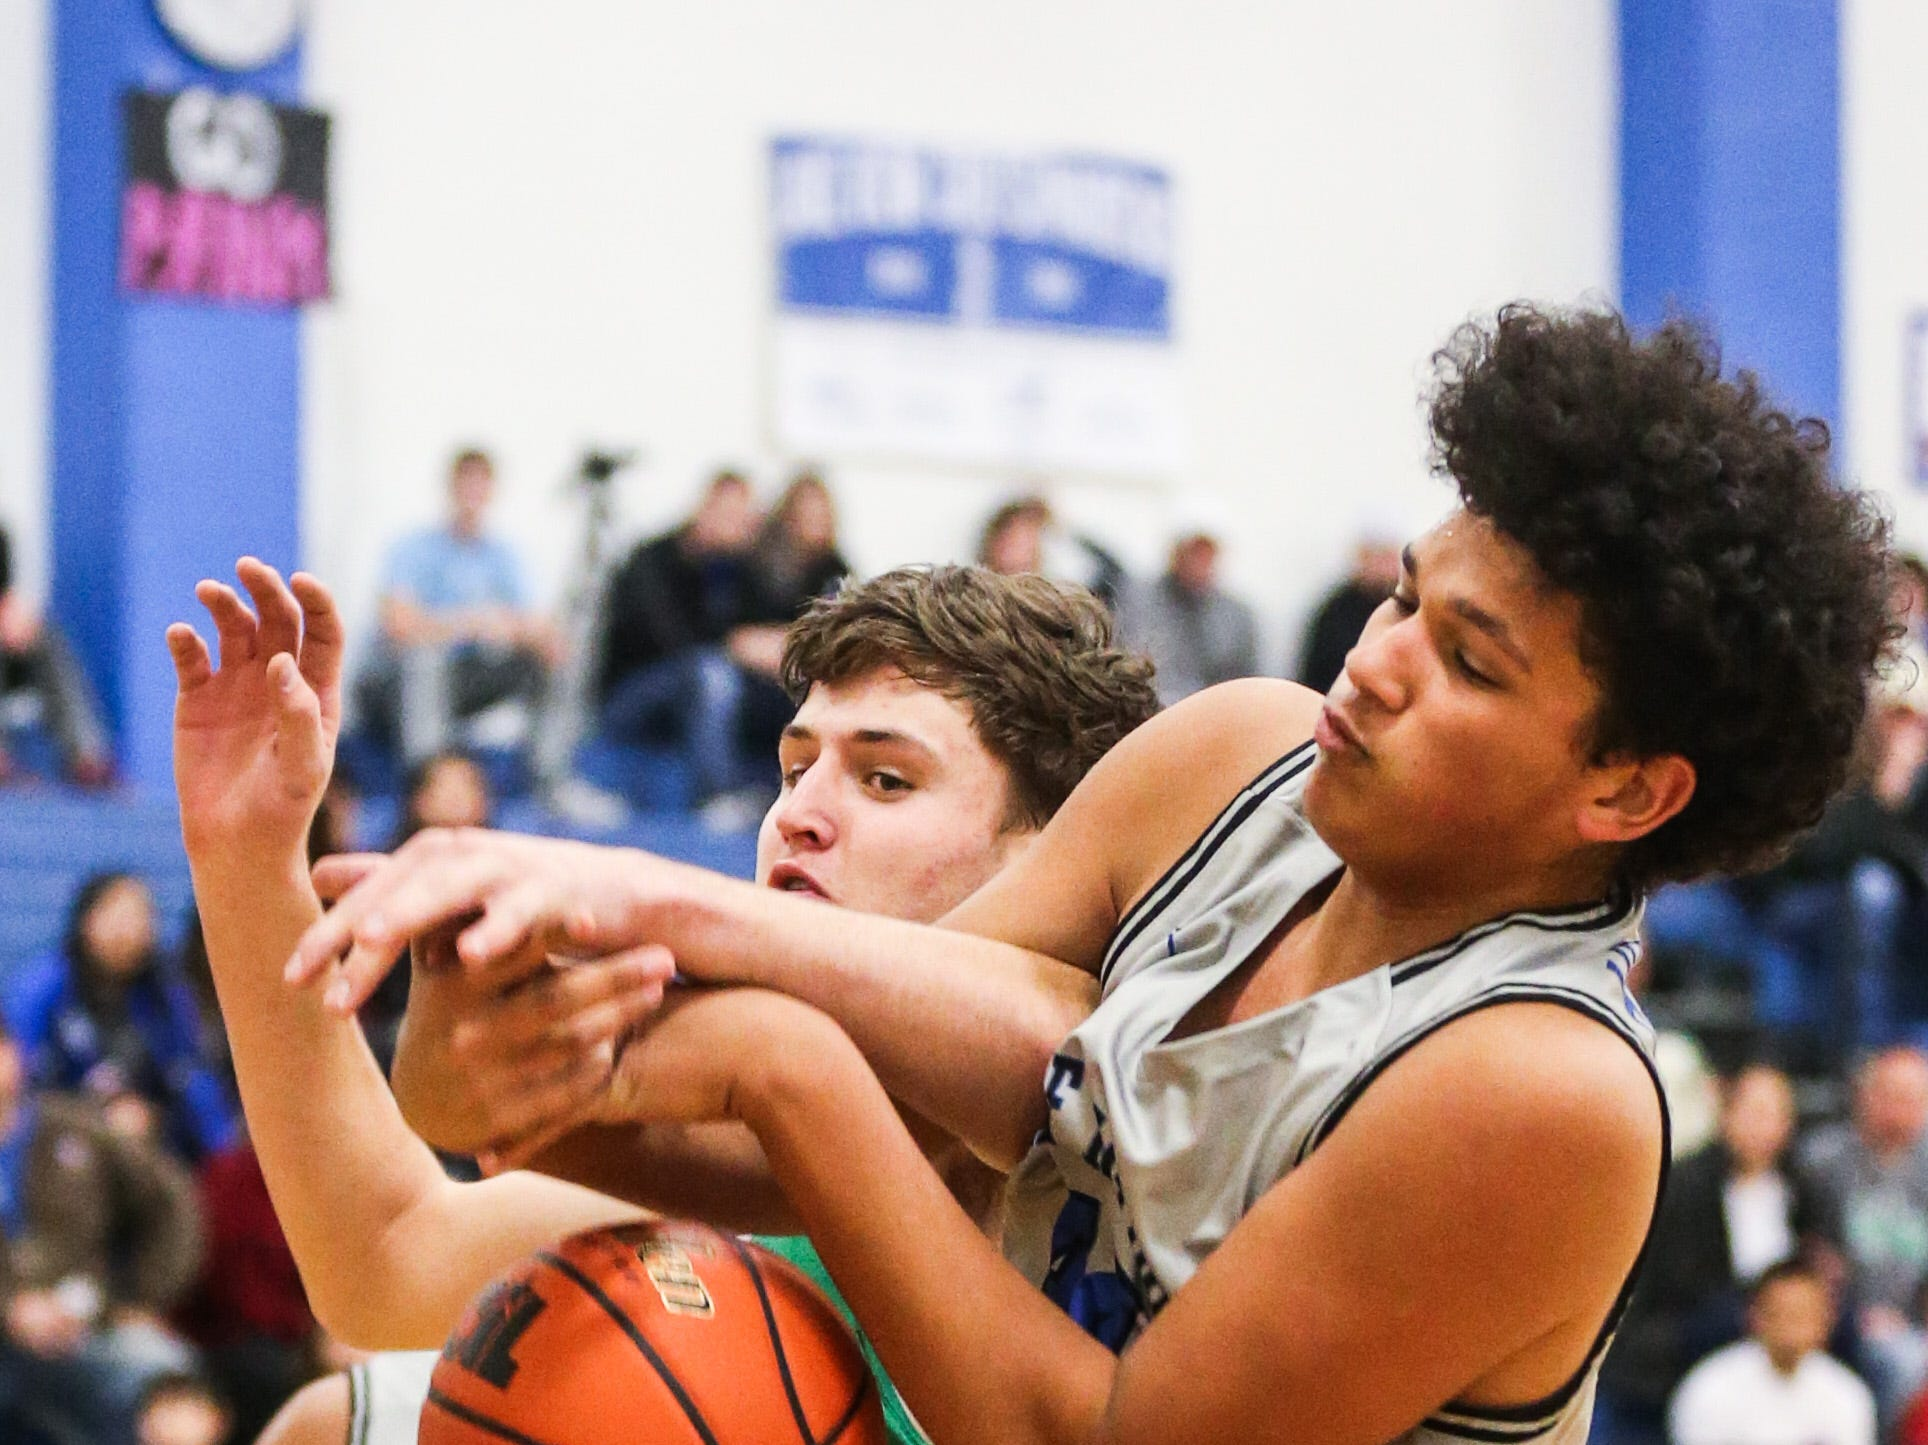 Lake View's Joseph Brooks fights for the rebound with Wall Friday, Dec. 14, 2018, at Lake View High School.